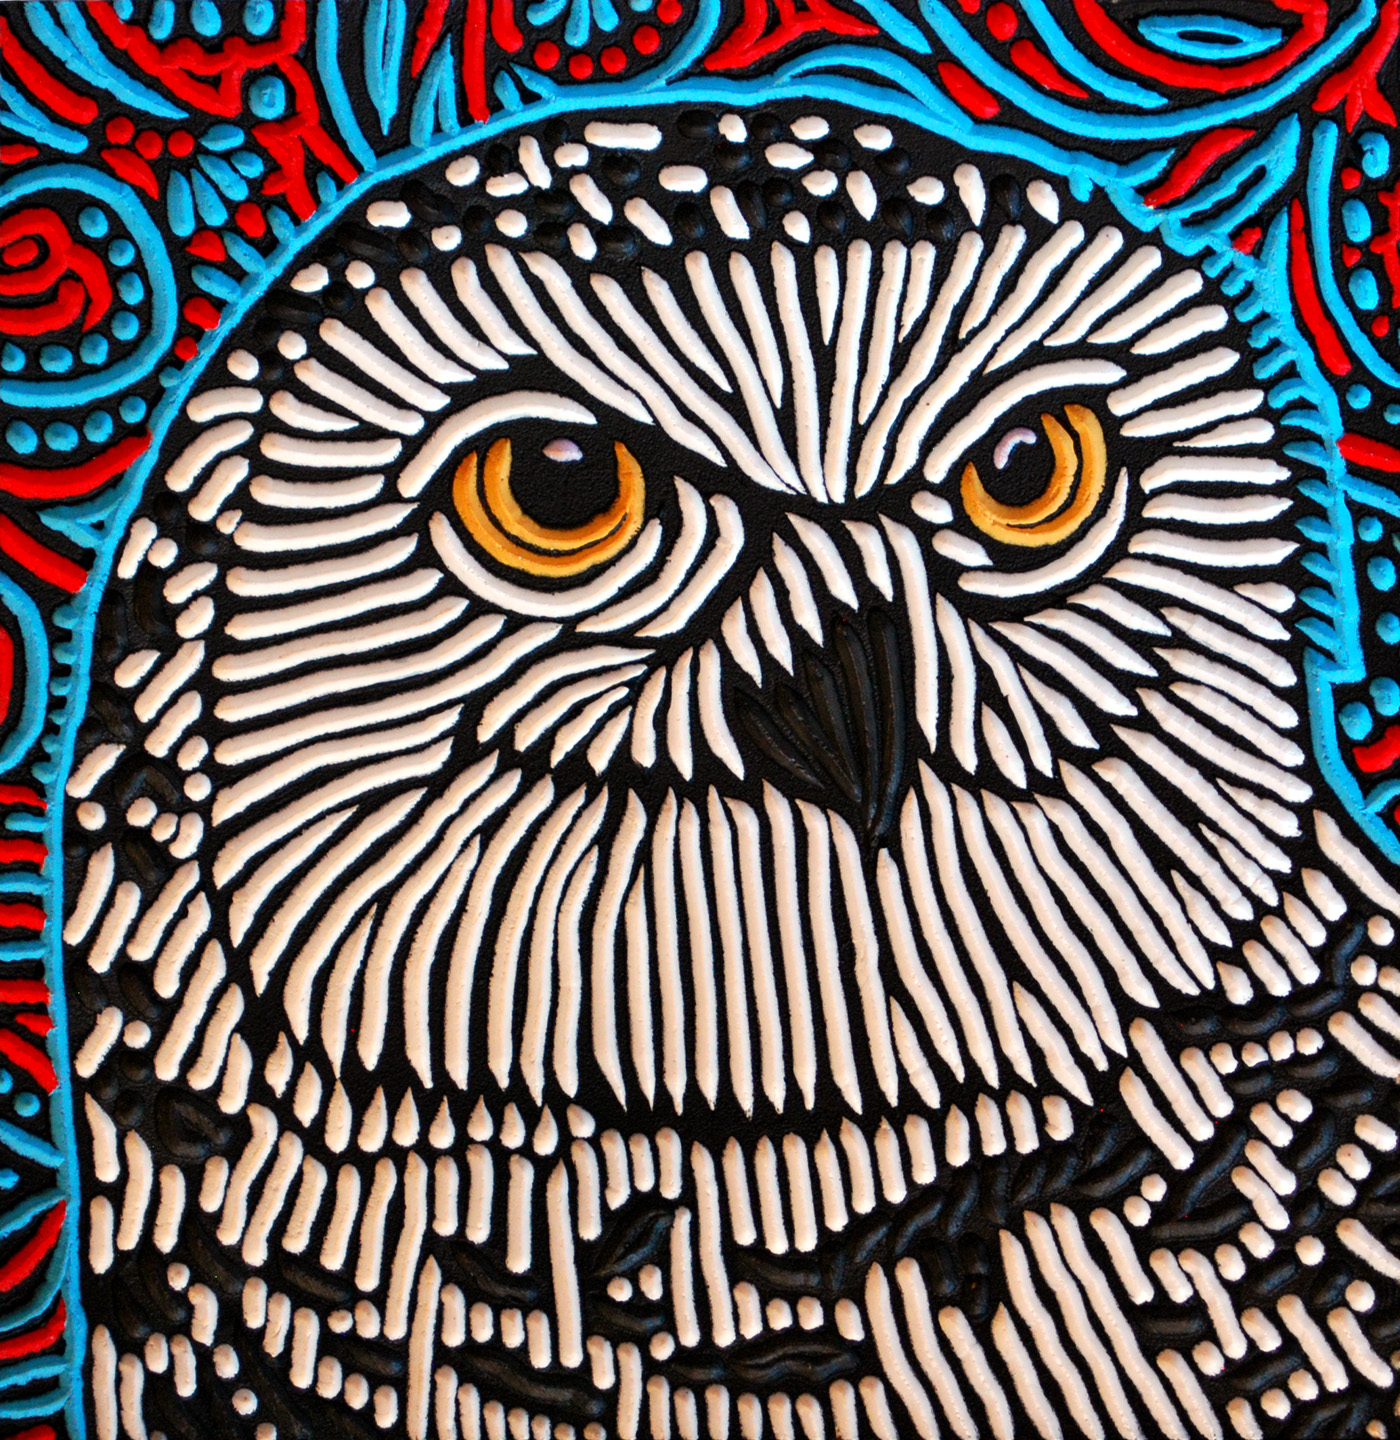 A lot of people have fallen in love with owls over the past couple of years. This would be a great addition to a collection or beautiful as a stand-alone piece.